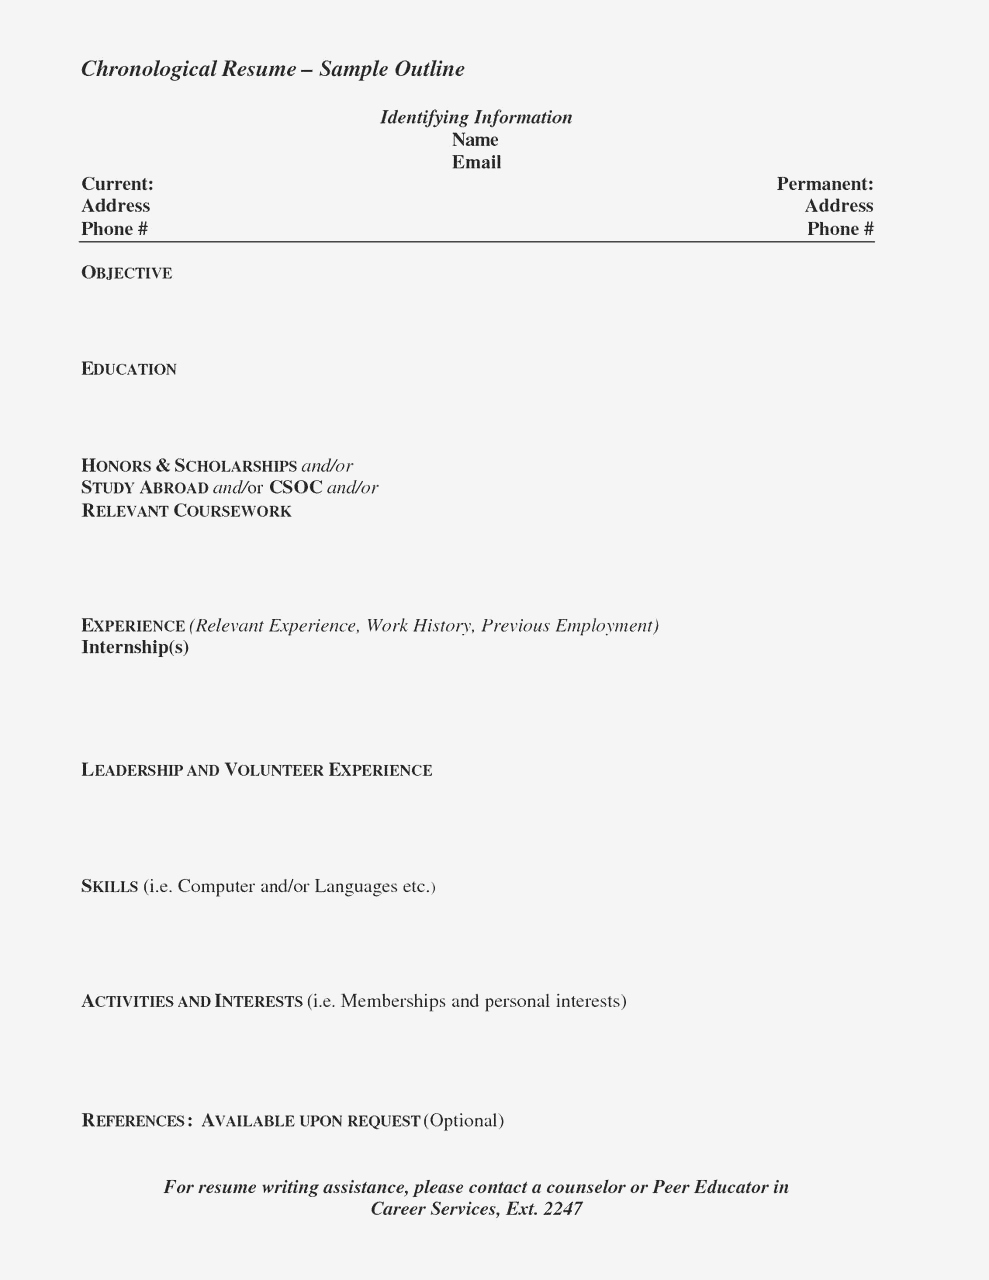 Creative Writer Resume - Sample Creative Resumes